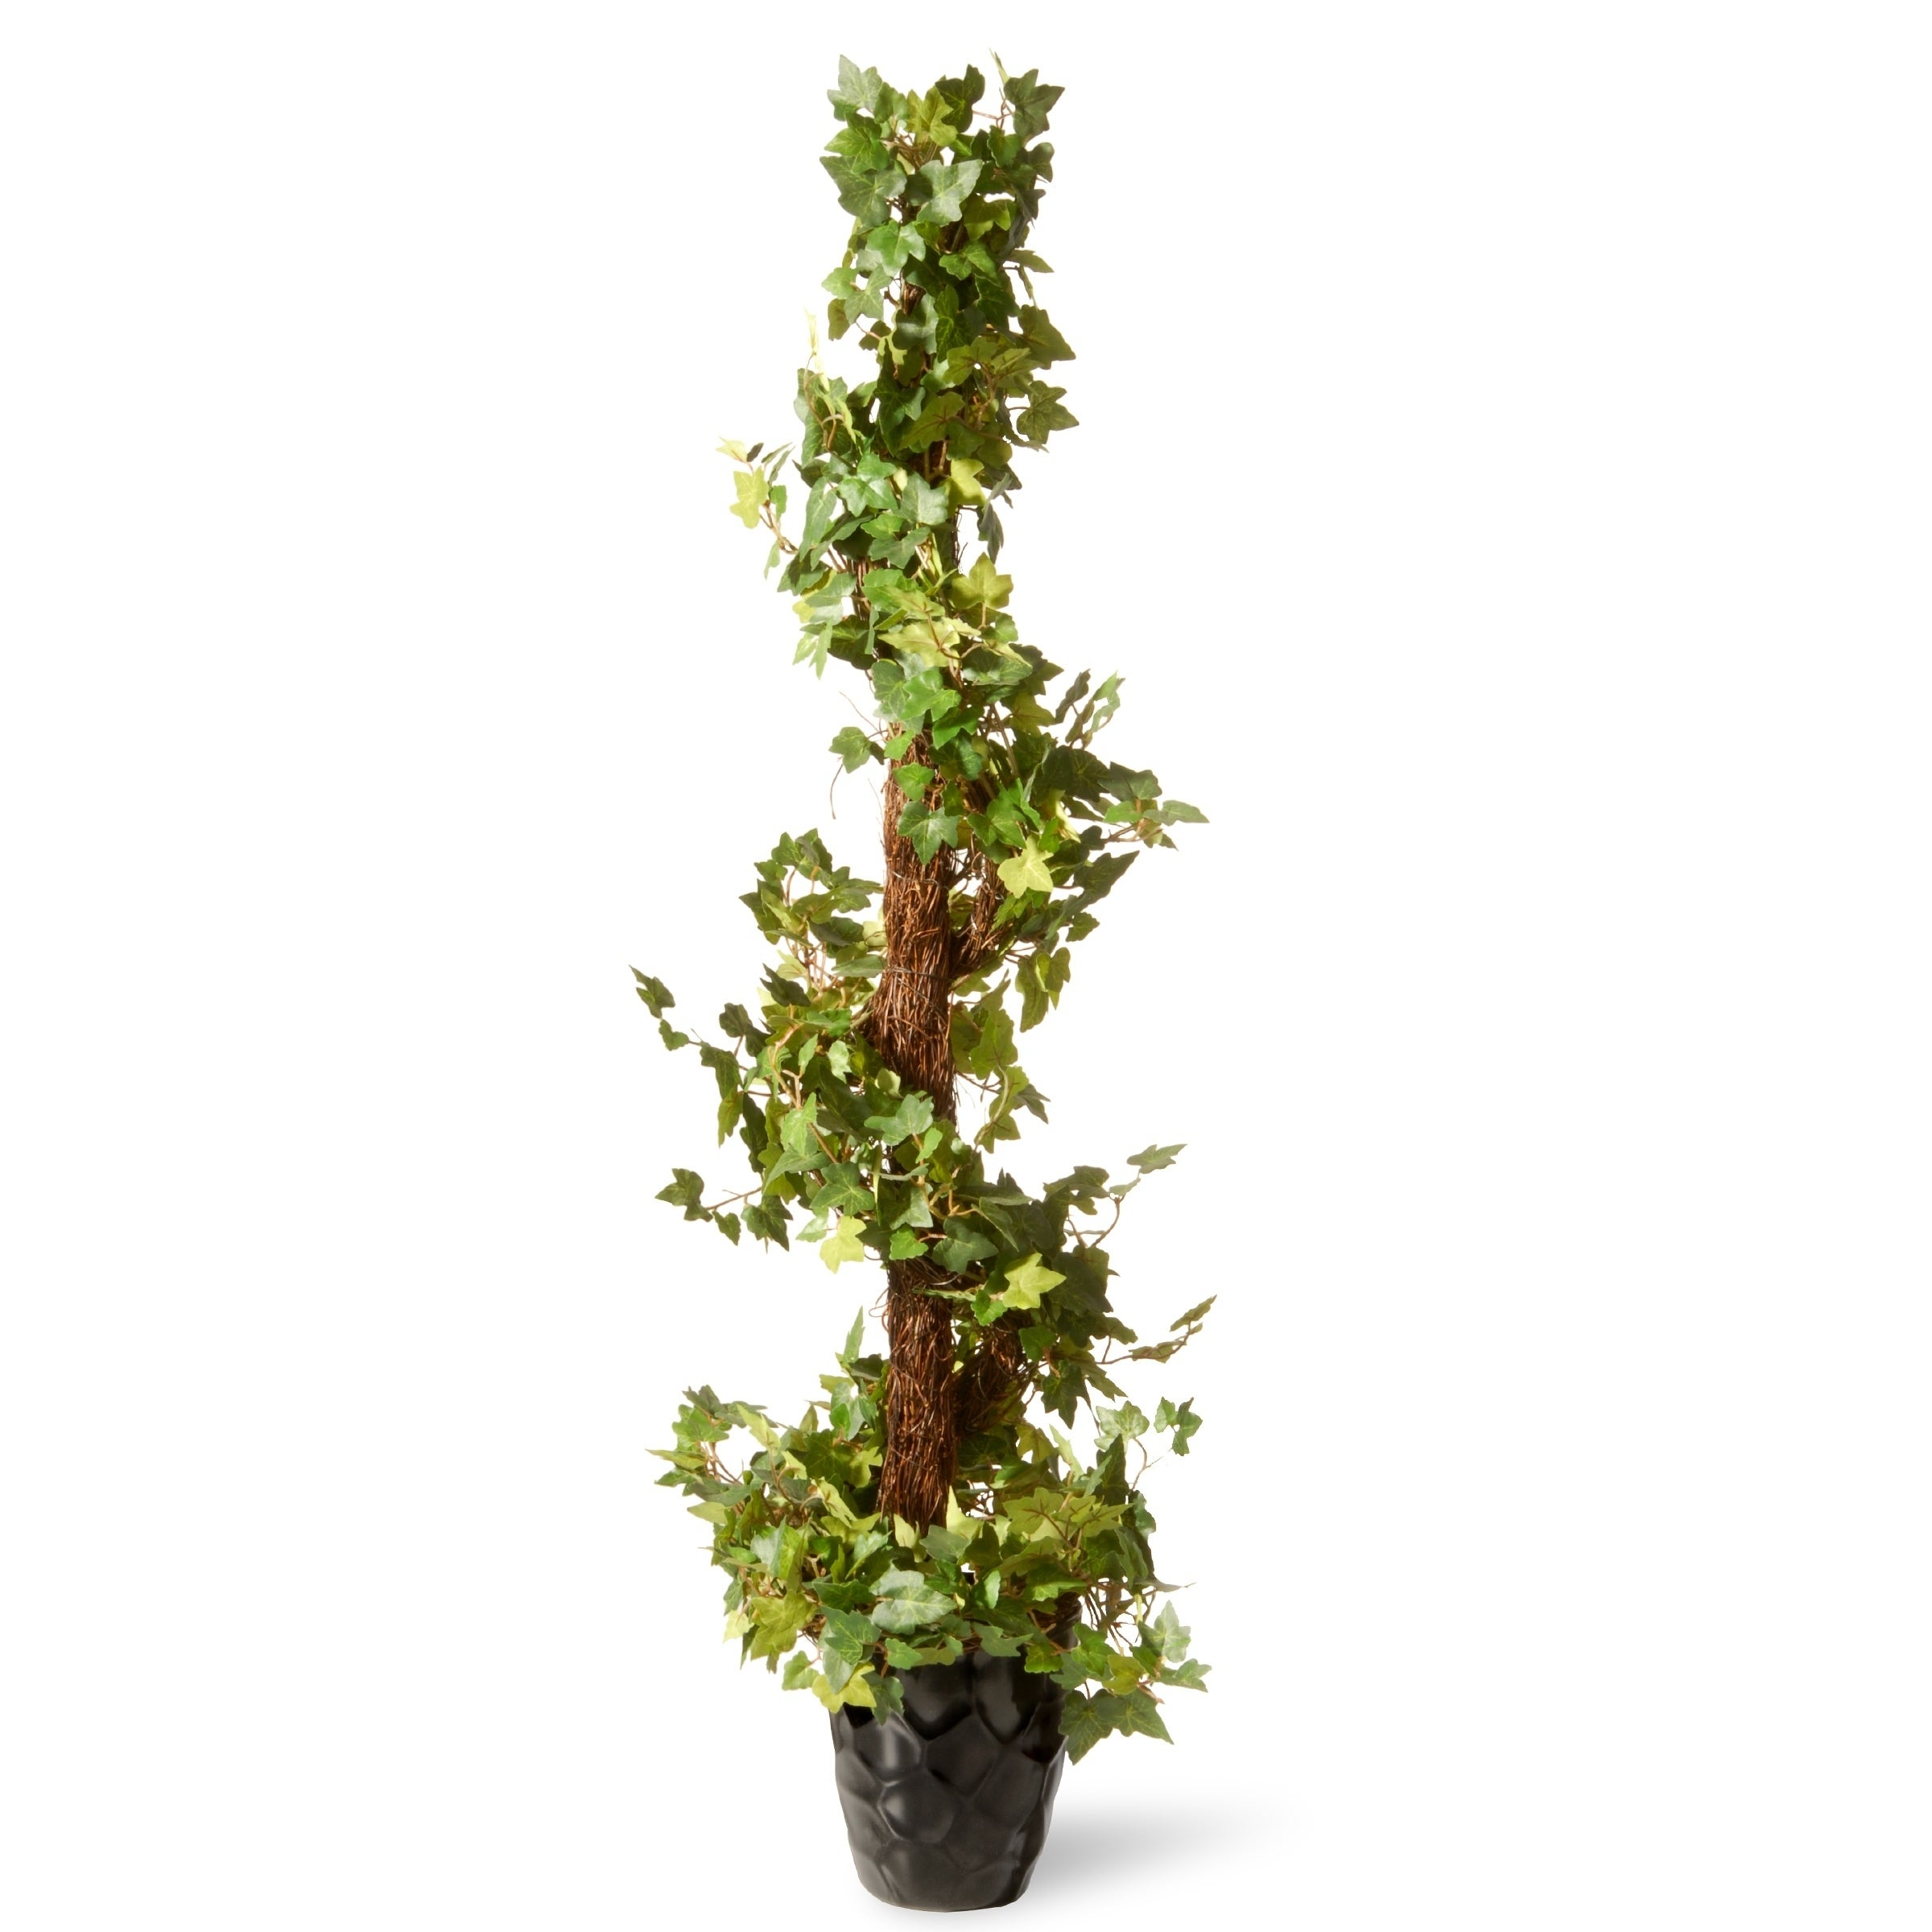 48 Ivy Spiral Topiary Overstock 20986805